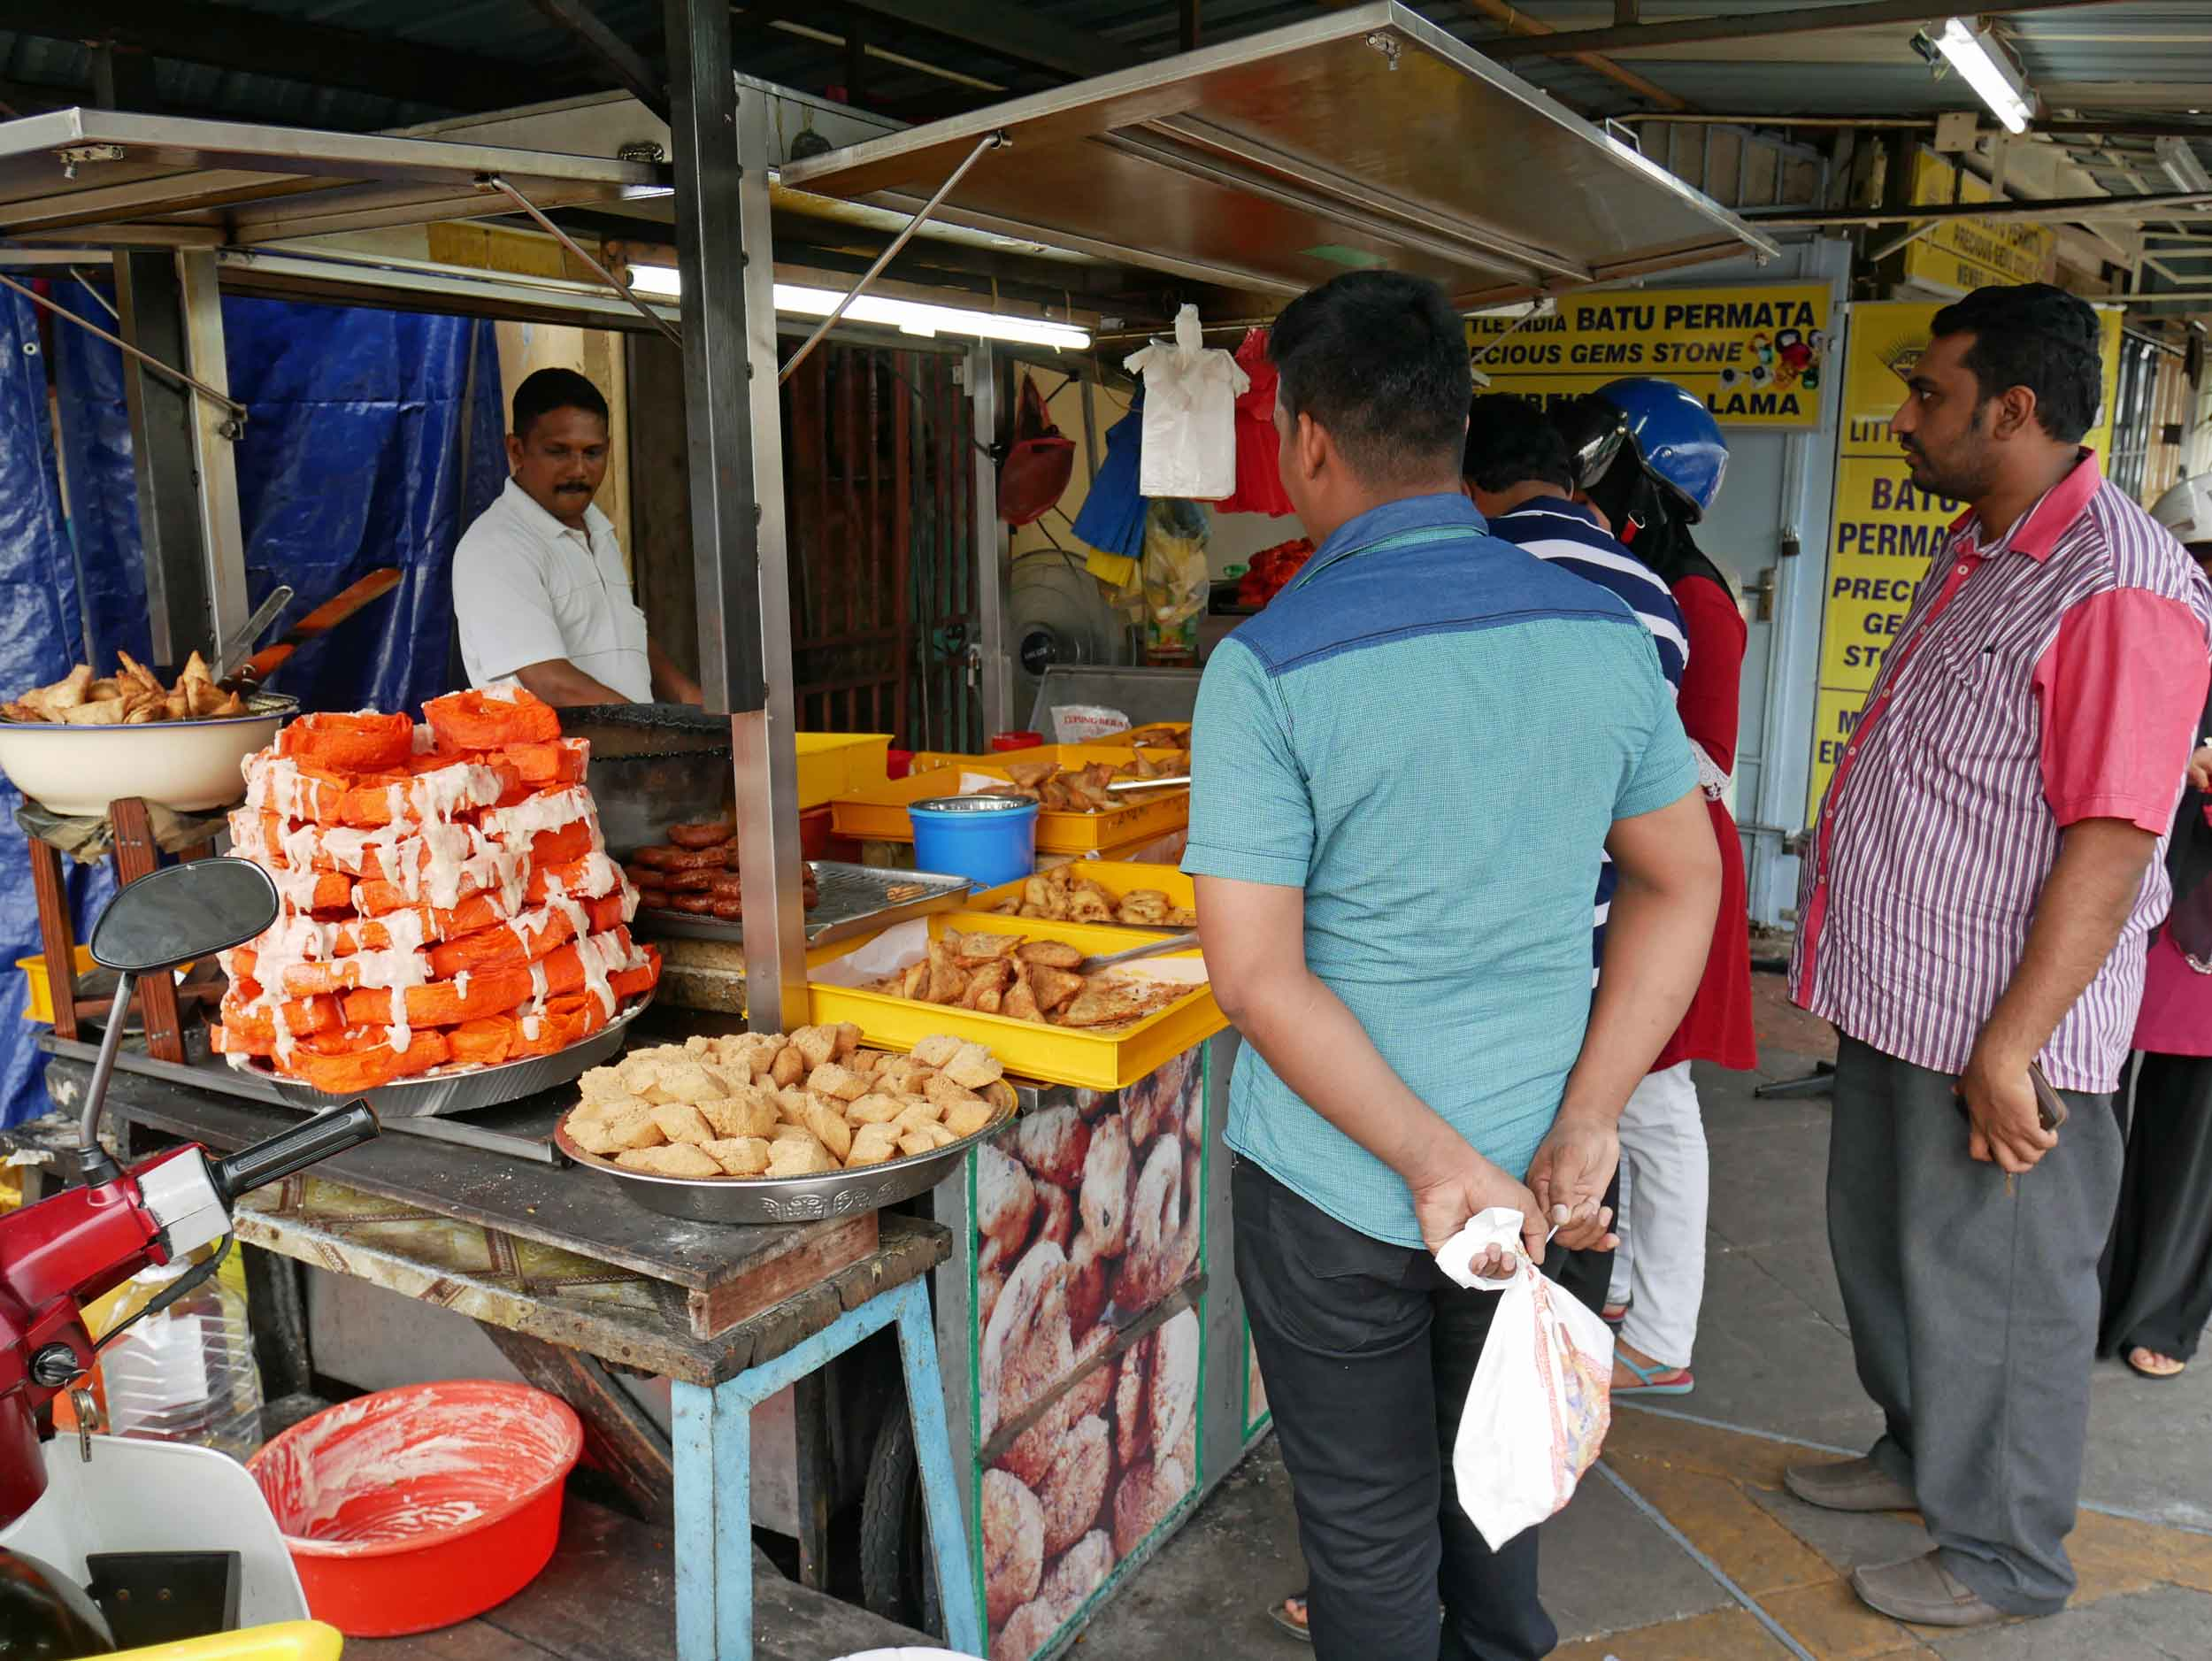 George Town has a thriving Little India with plenty of tasty food both on the street and in cafes (April 27).